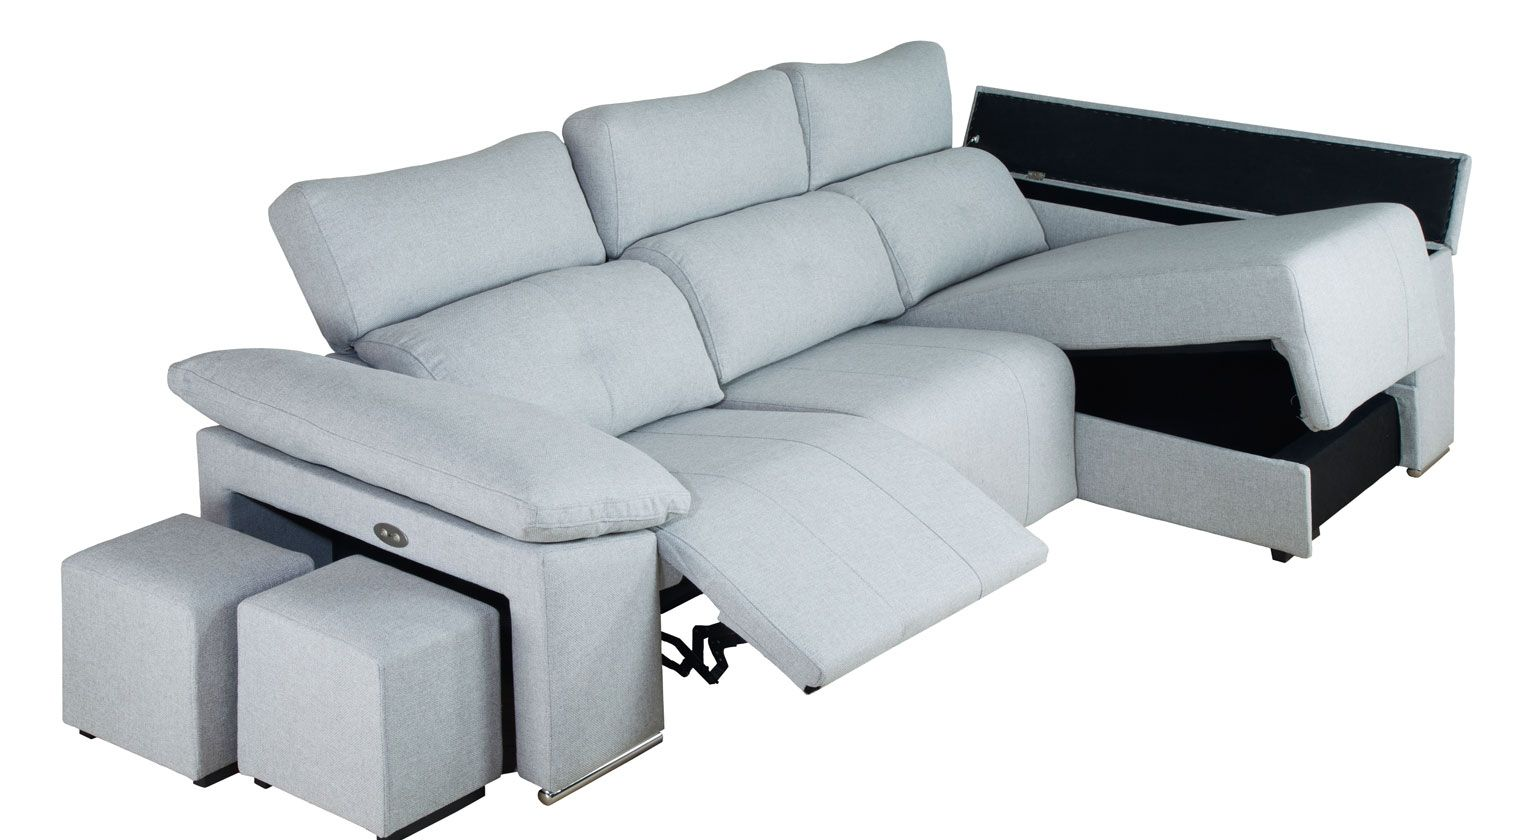 Imagen-Chaise-Longue-Relax-CALIPSO-2